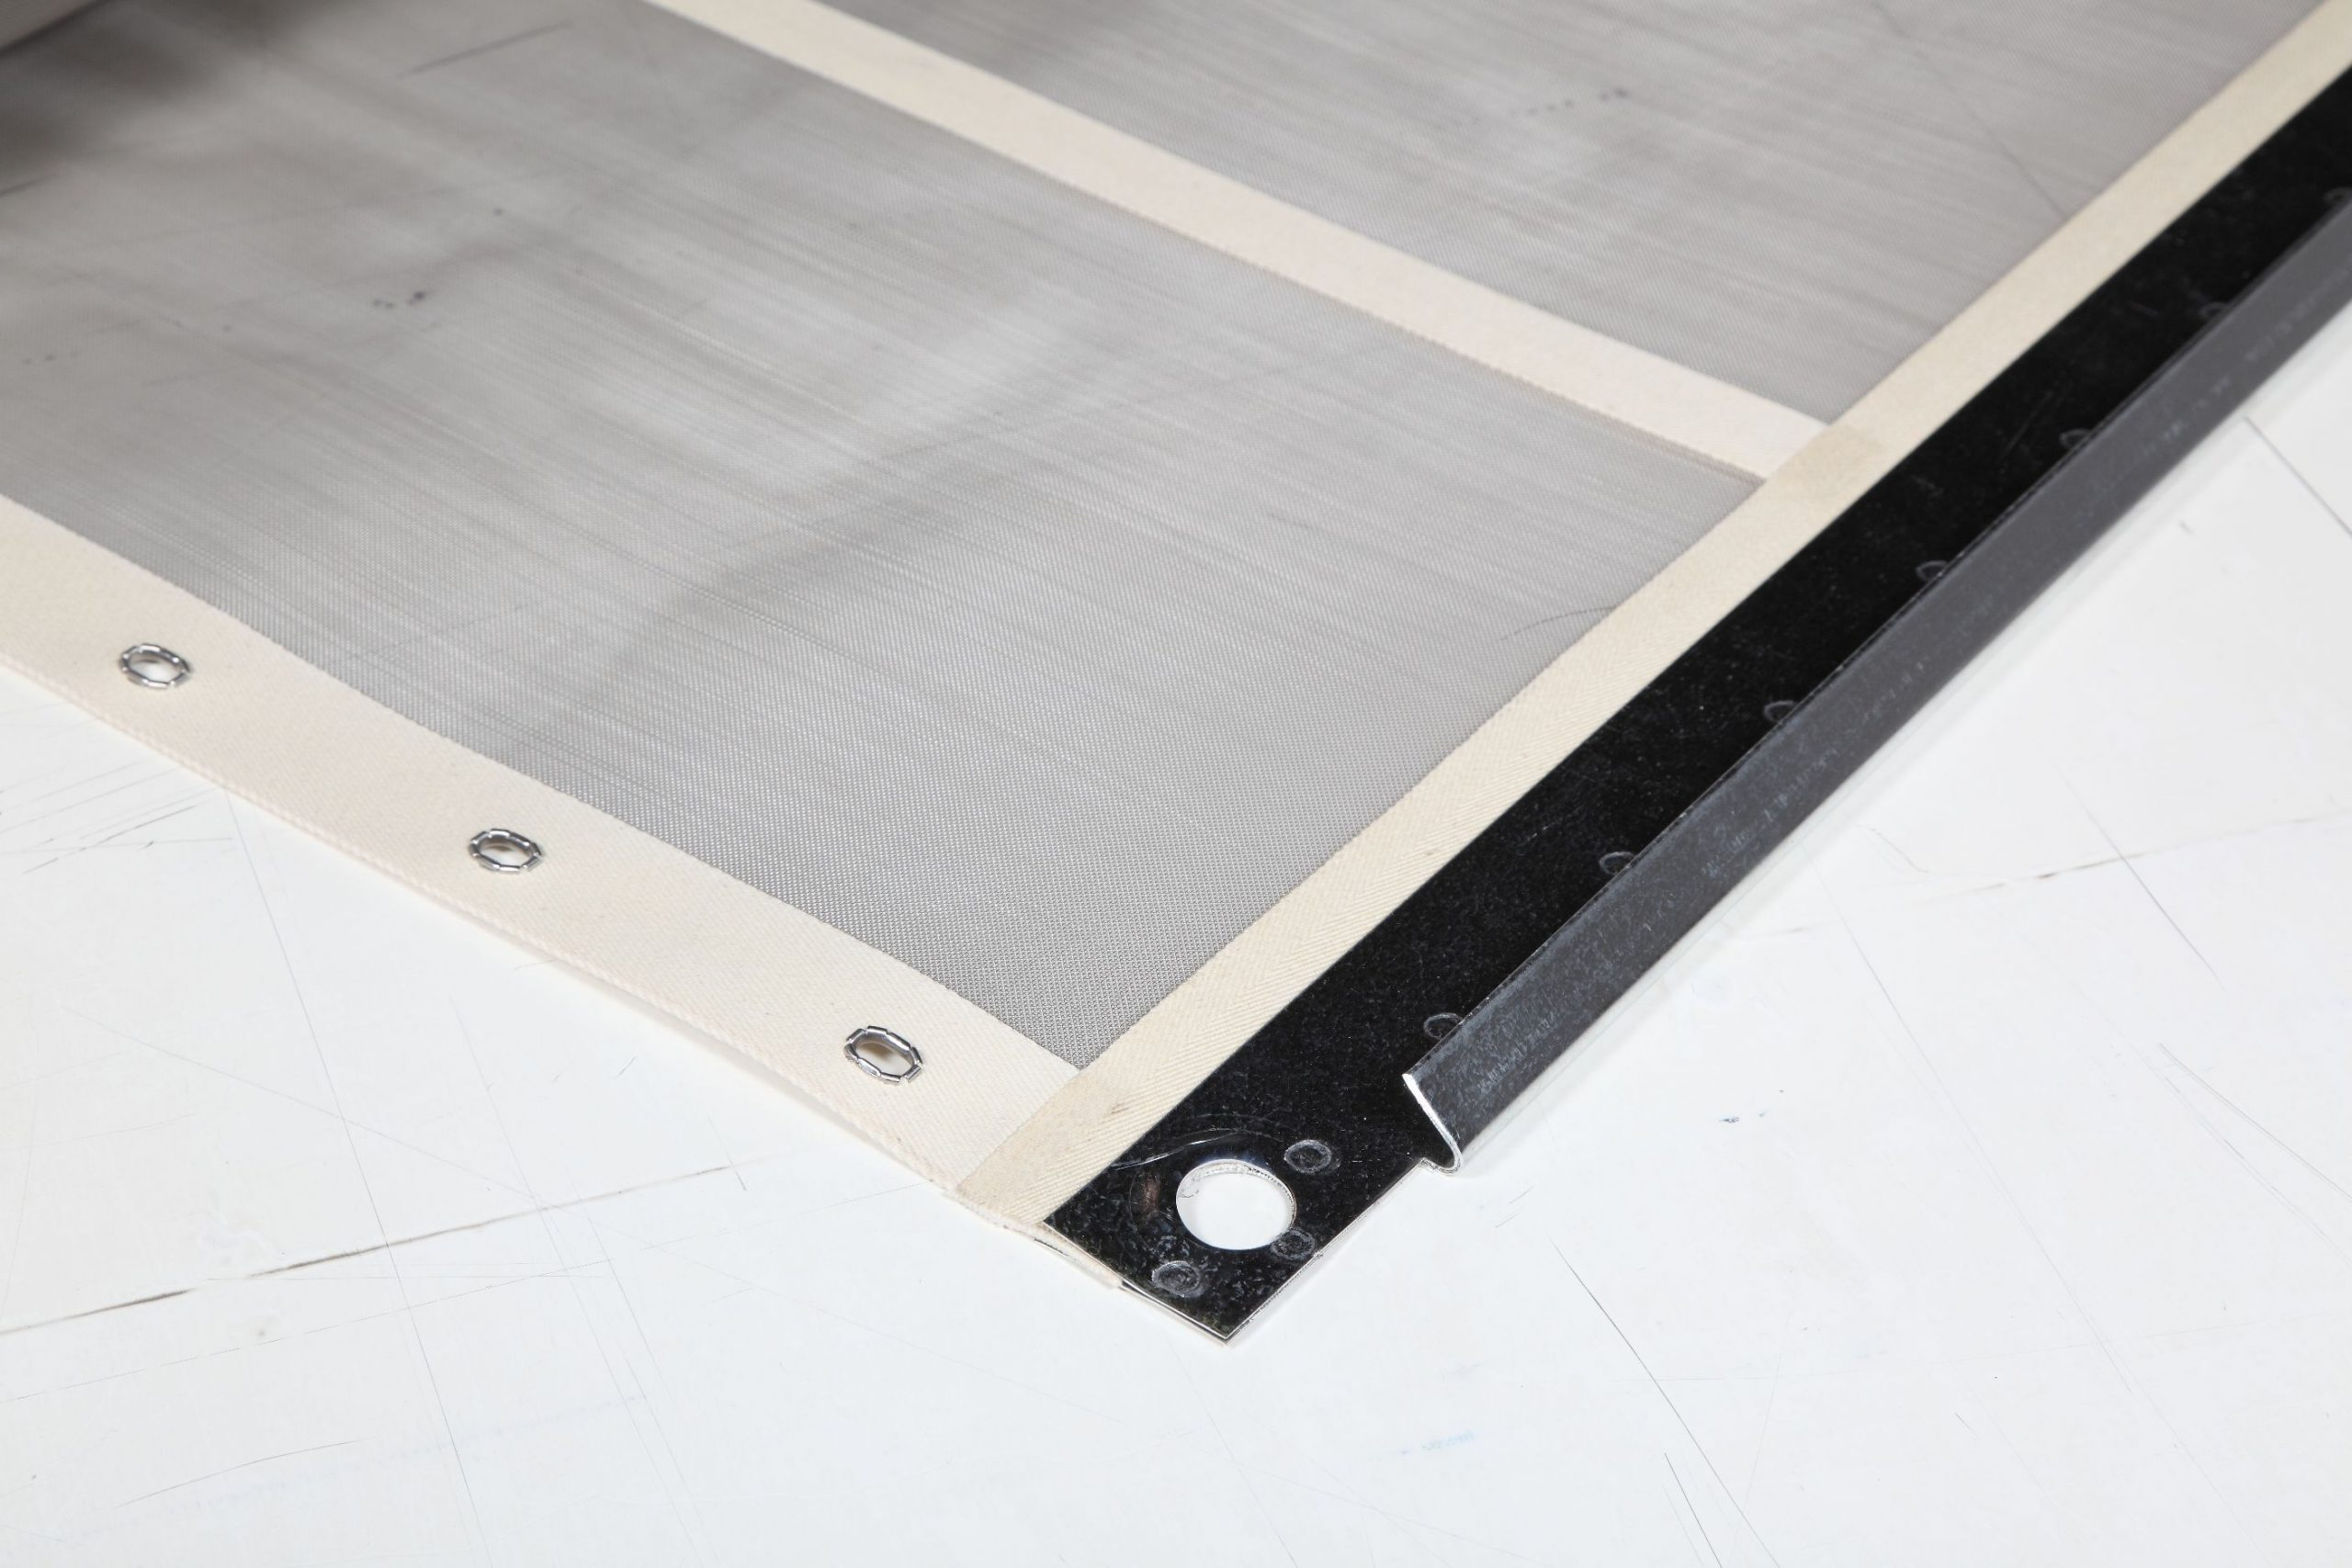 sand mineral screens with edging and hooks